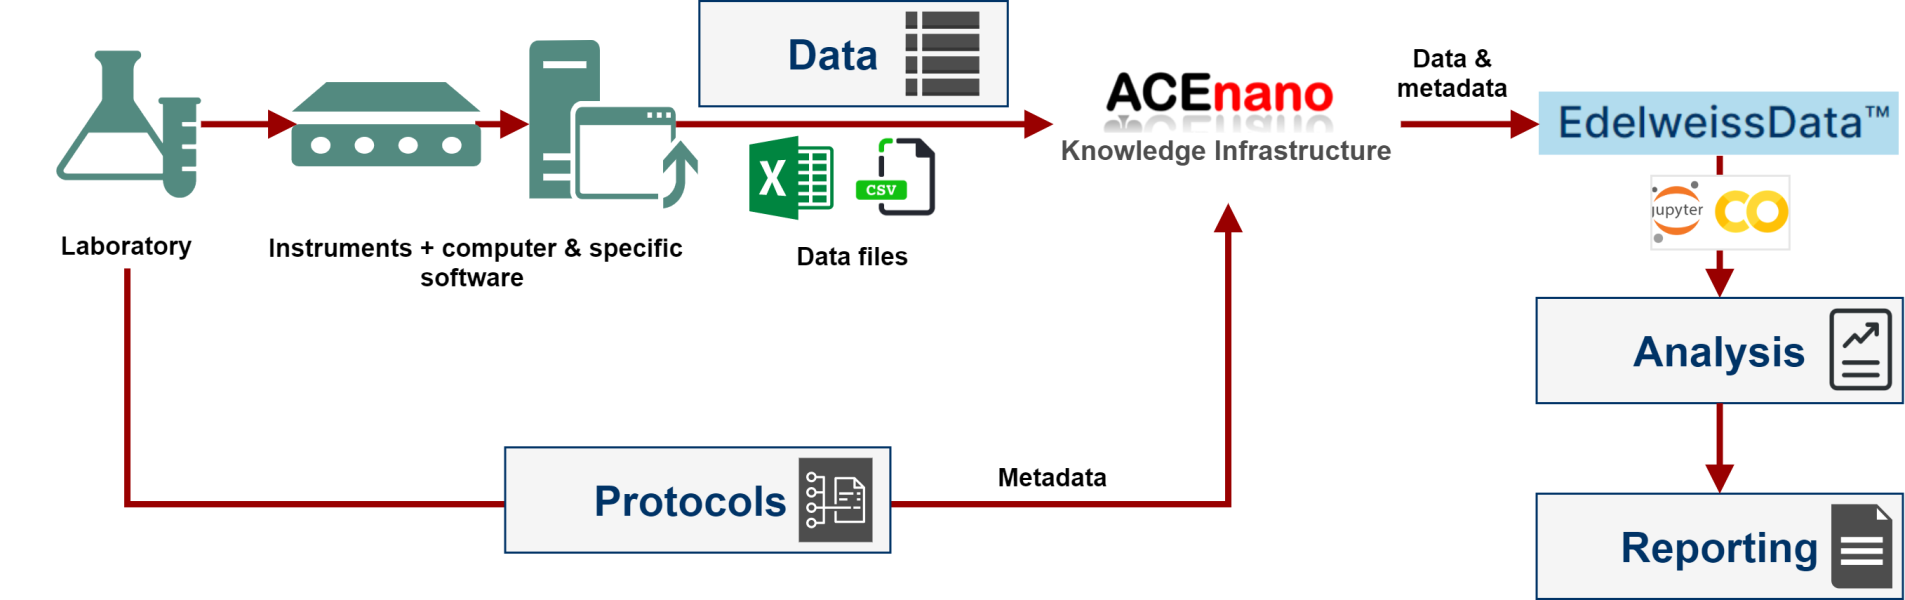 Workflow to support protocols and data handling, analysis and reporting